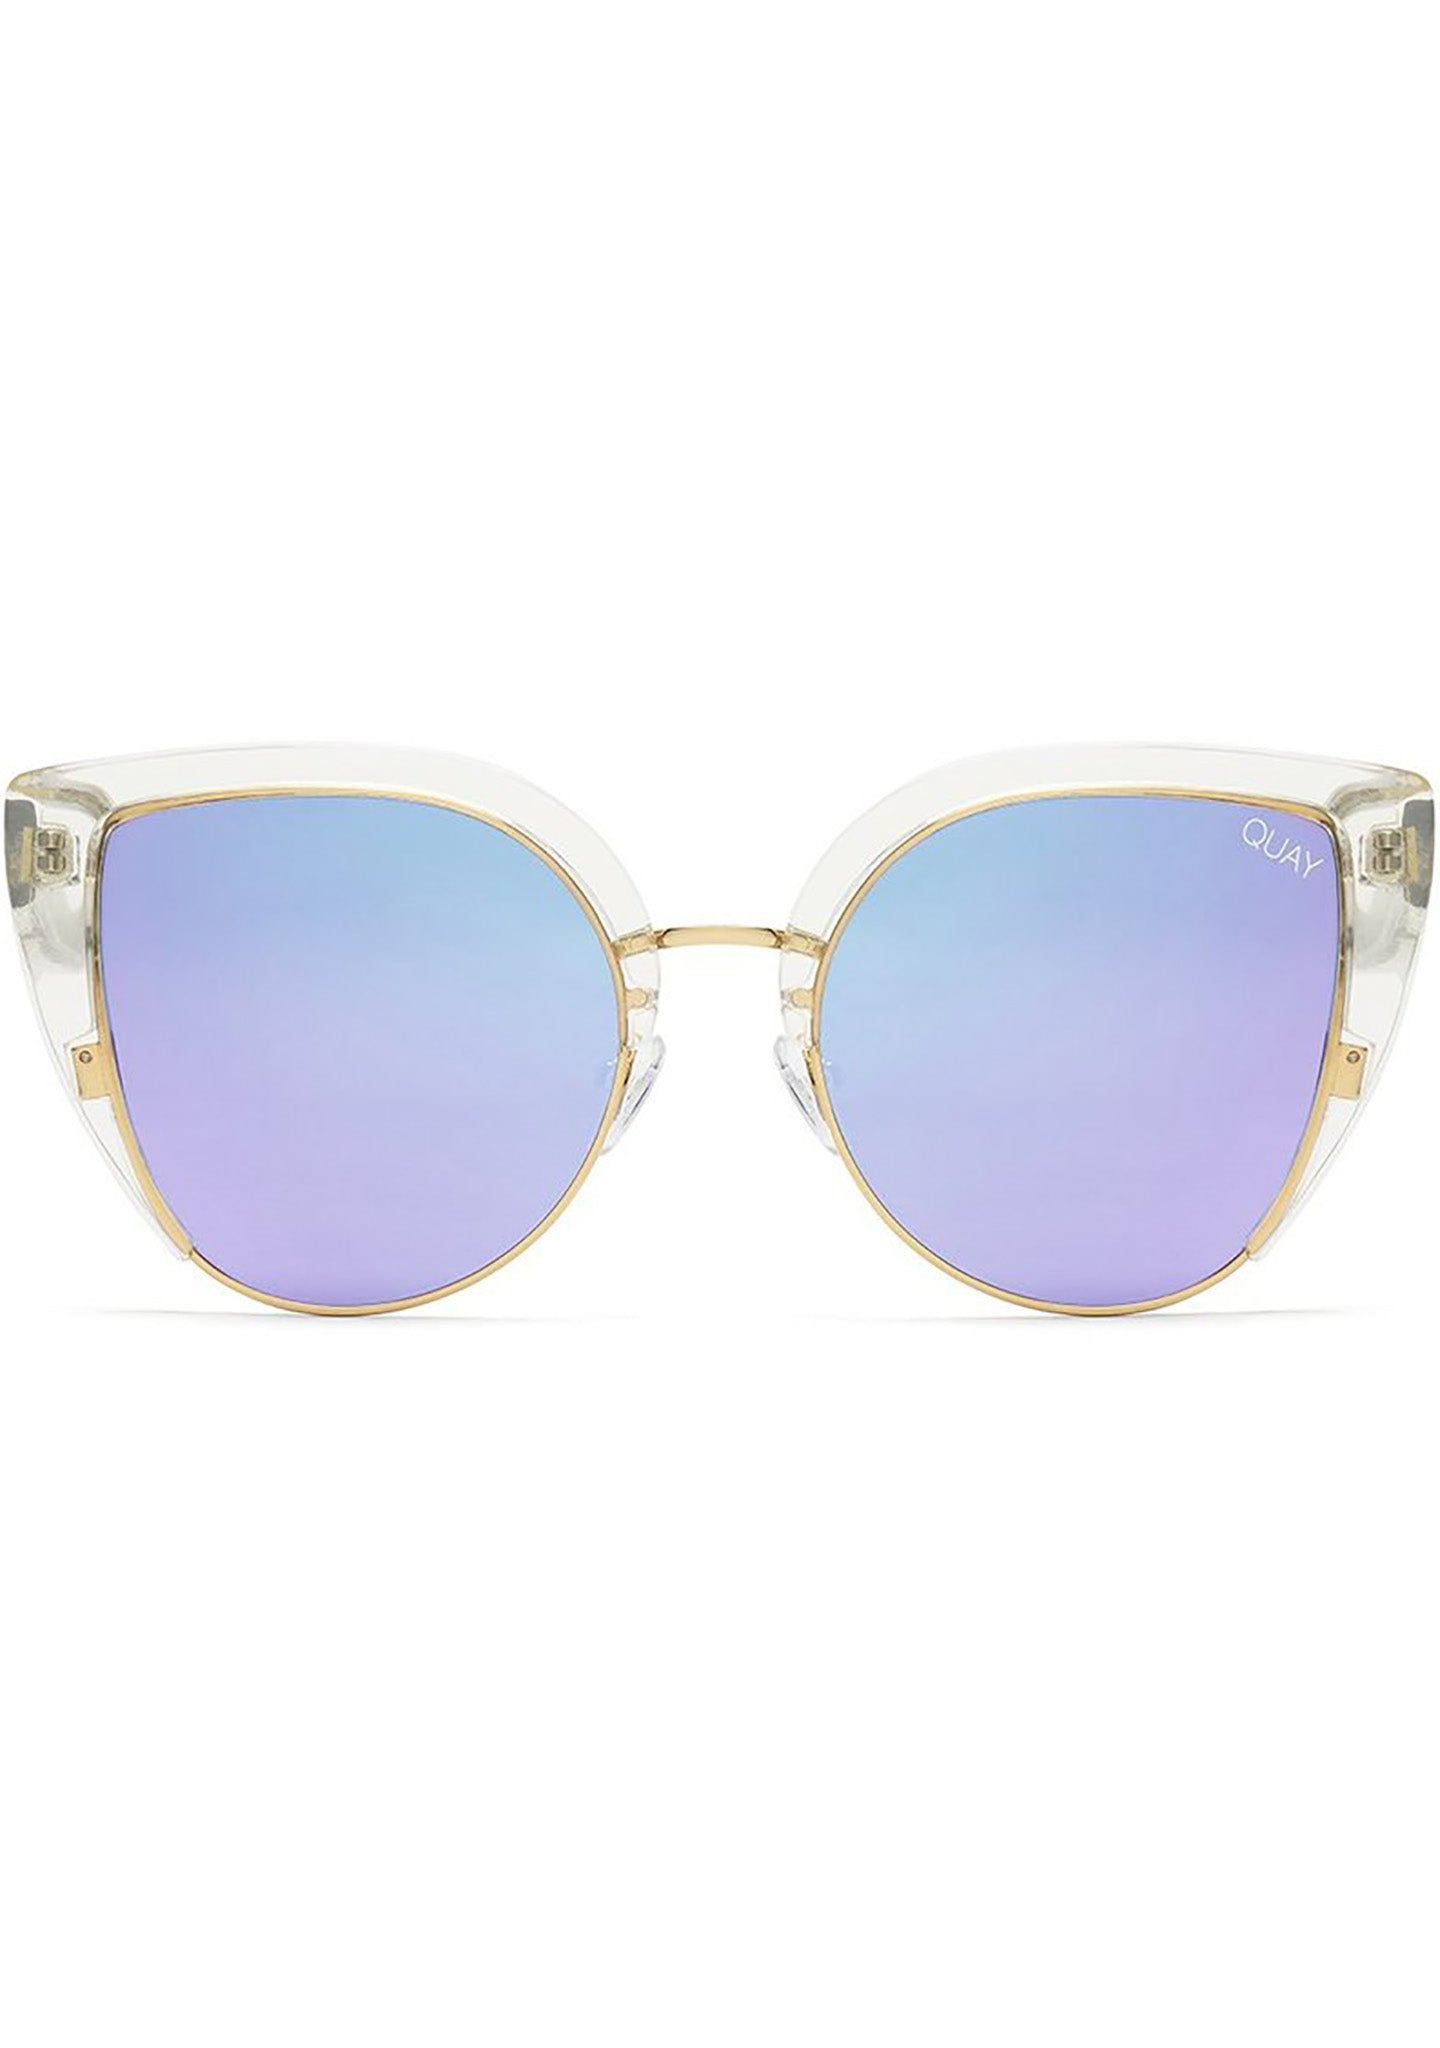 0fef45c169 X Missguided Oh My Dayz Sunglasses in Clear Purple